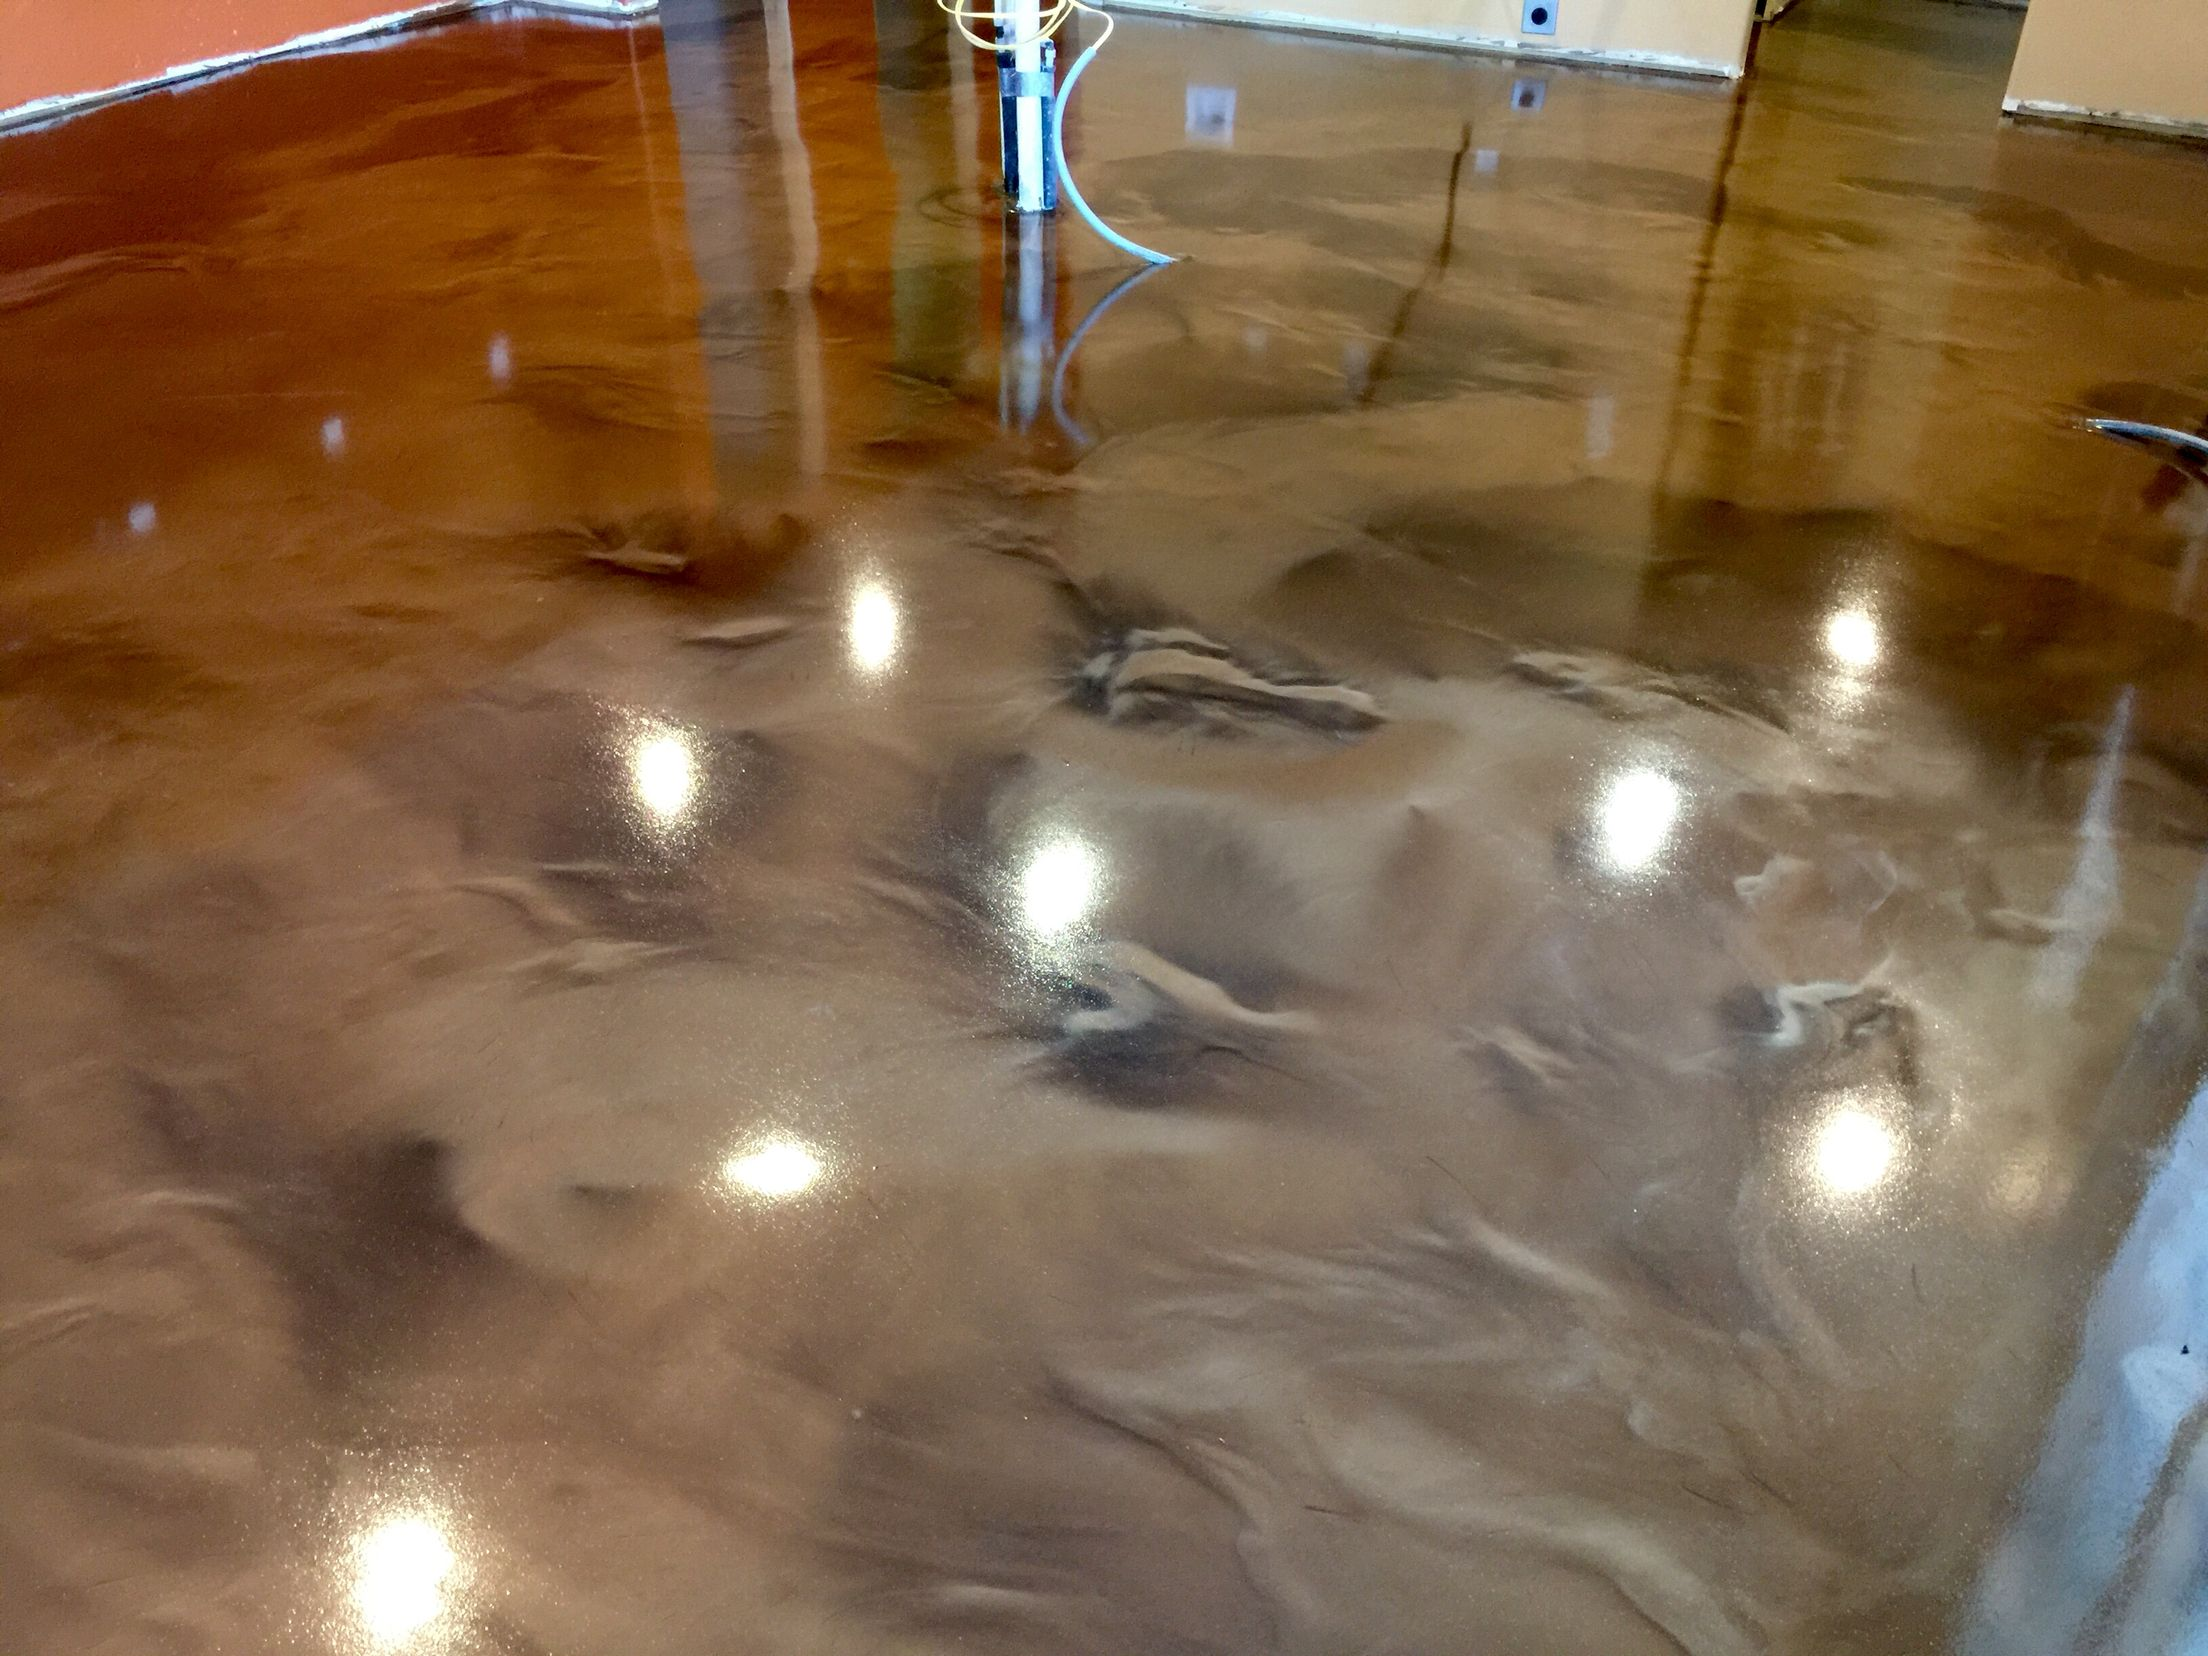 styles pic vs popular epoxy of and cement floor xfile cementitious lines grout with metallic shocking sierra uncategorized by coatings